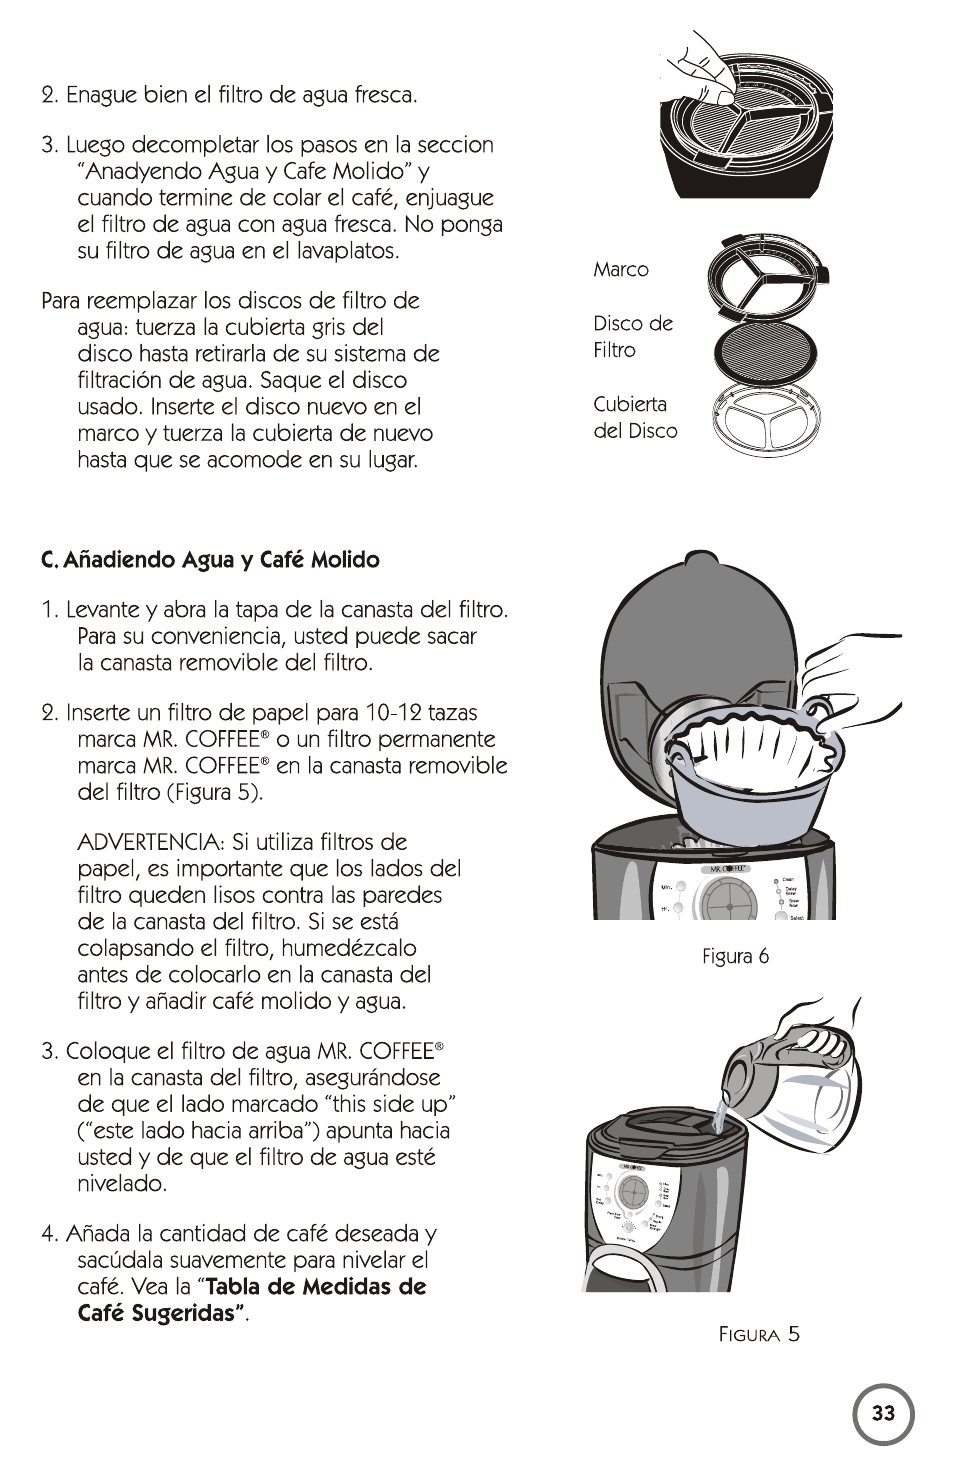 Mr. Coffee skx23 user manual | 13 pages | original mode | also for.